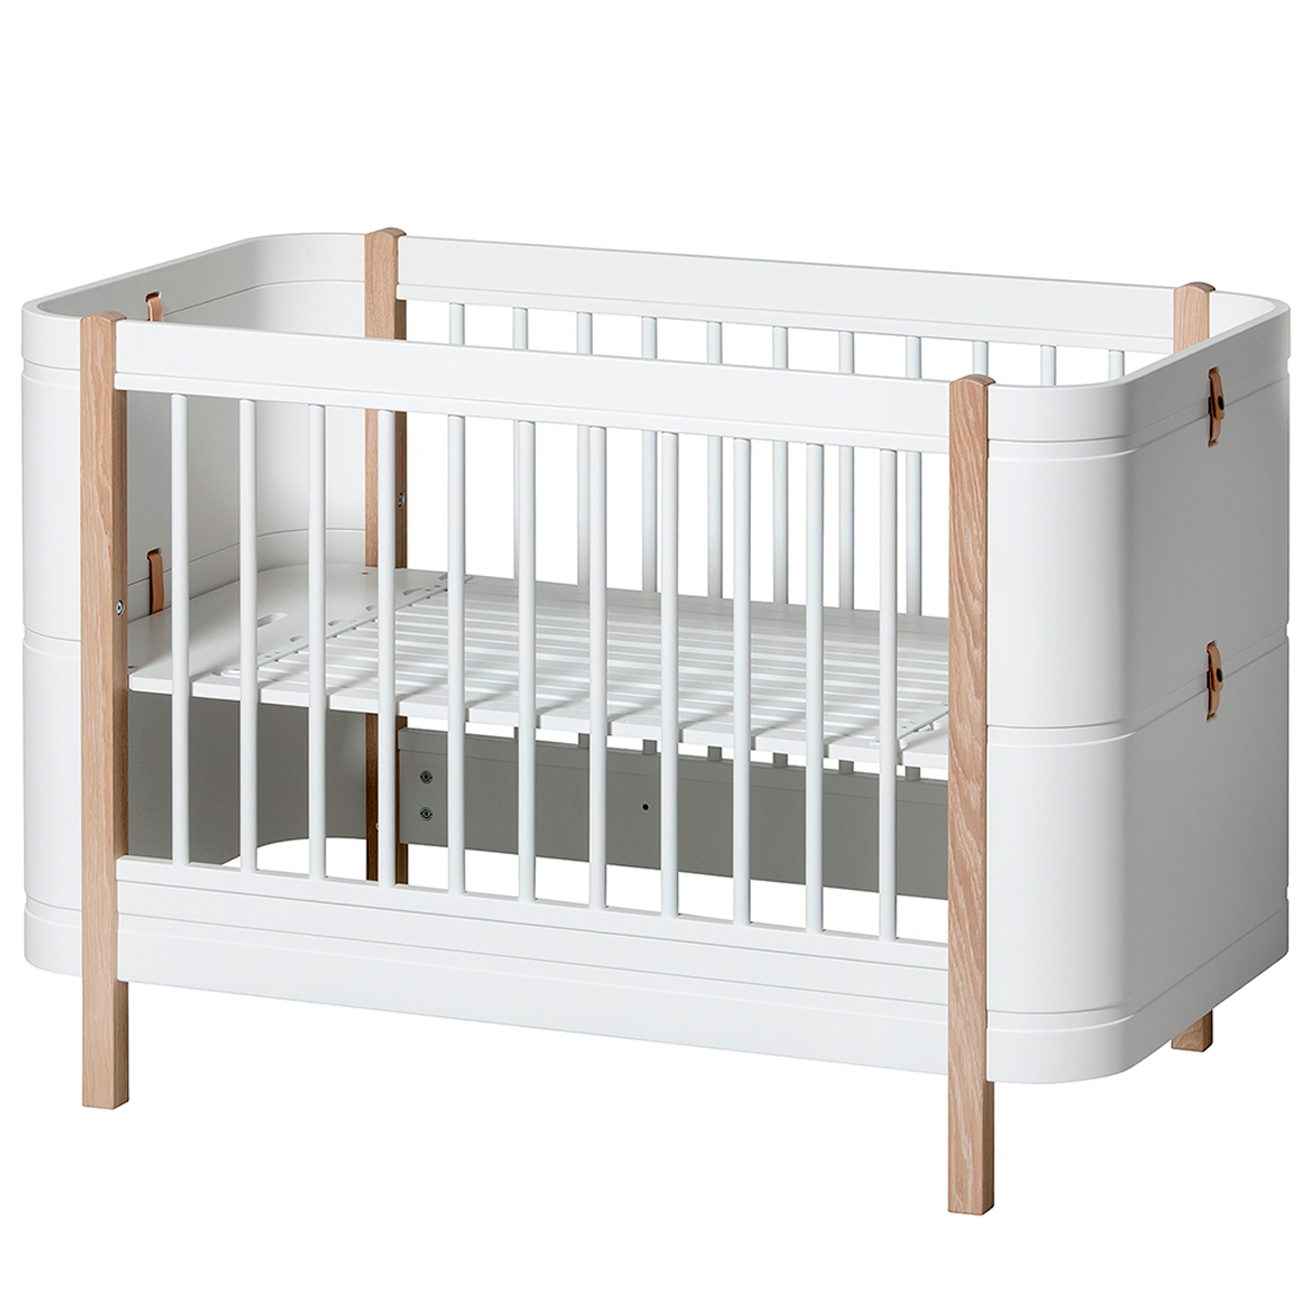 seng baby Oliver Furniture Wood Mini+ White/Oak seng baby